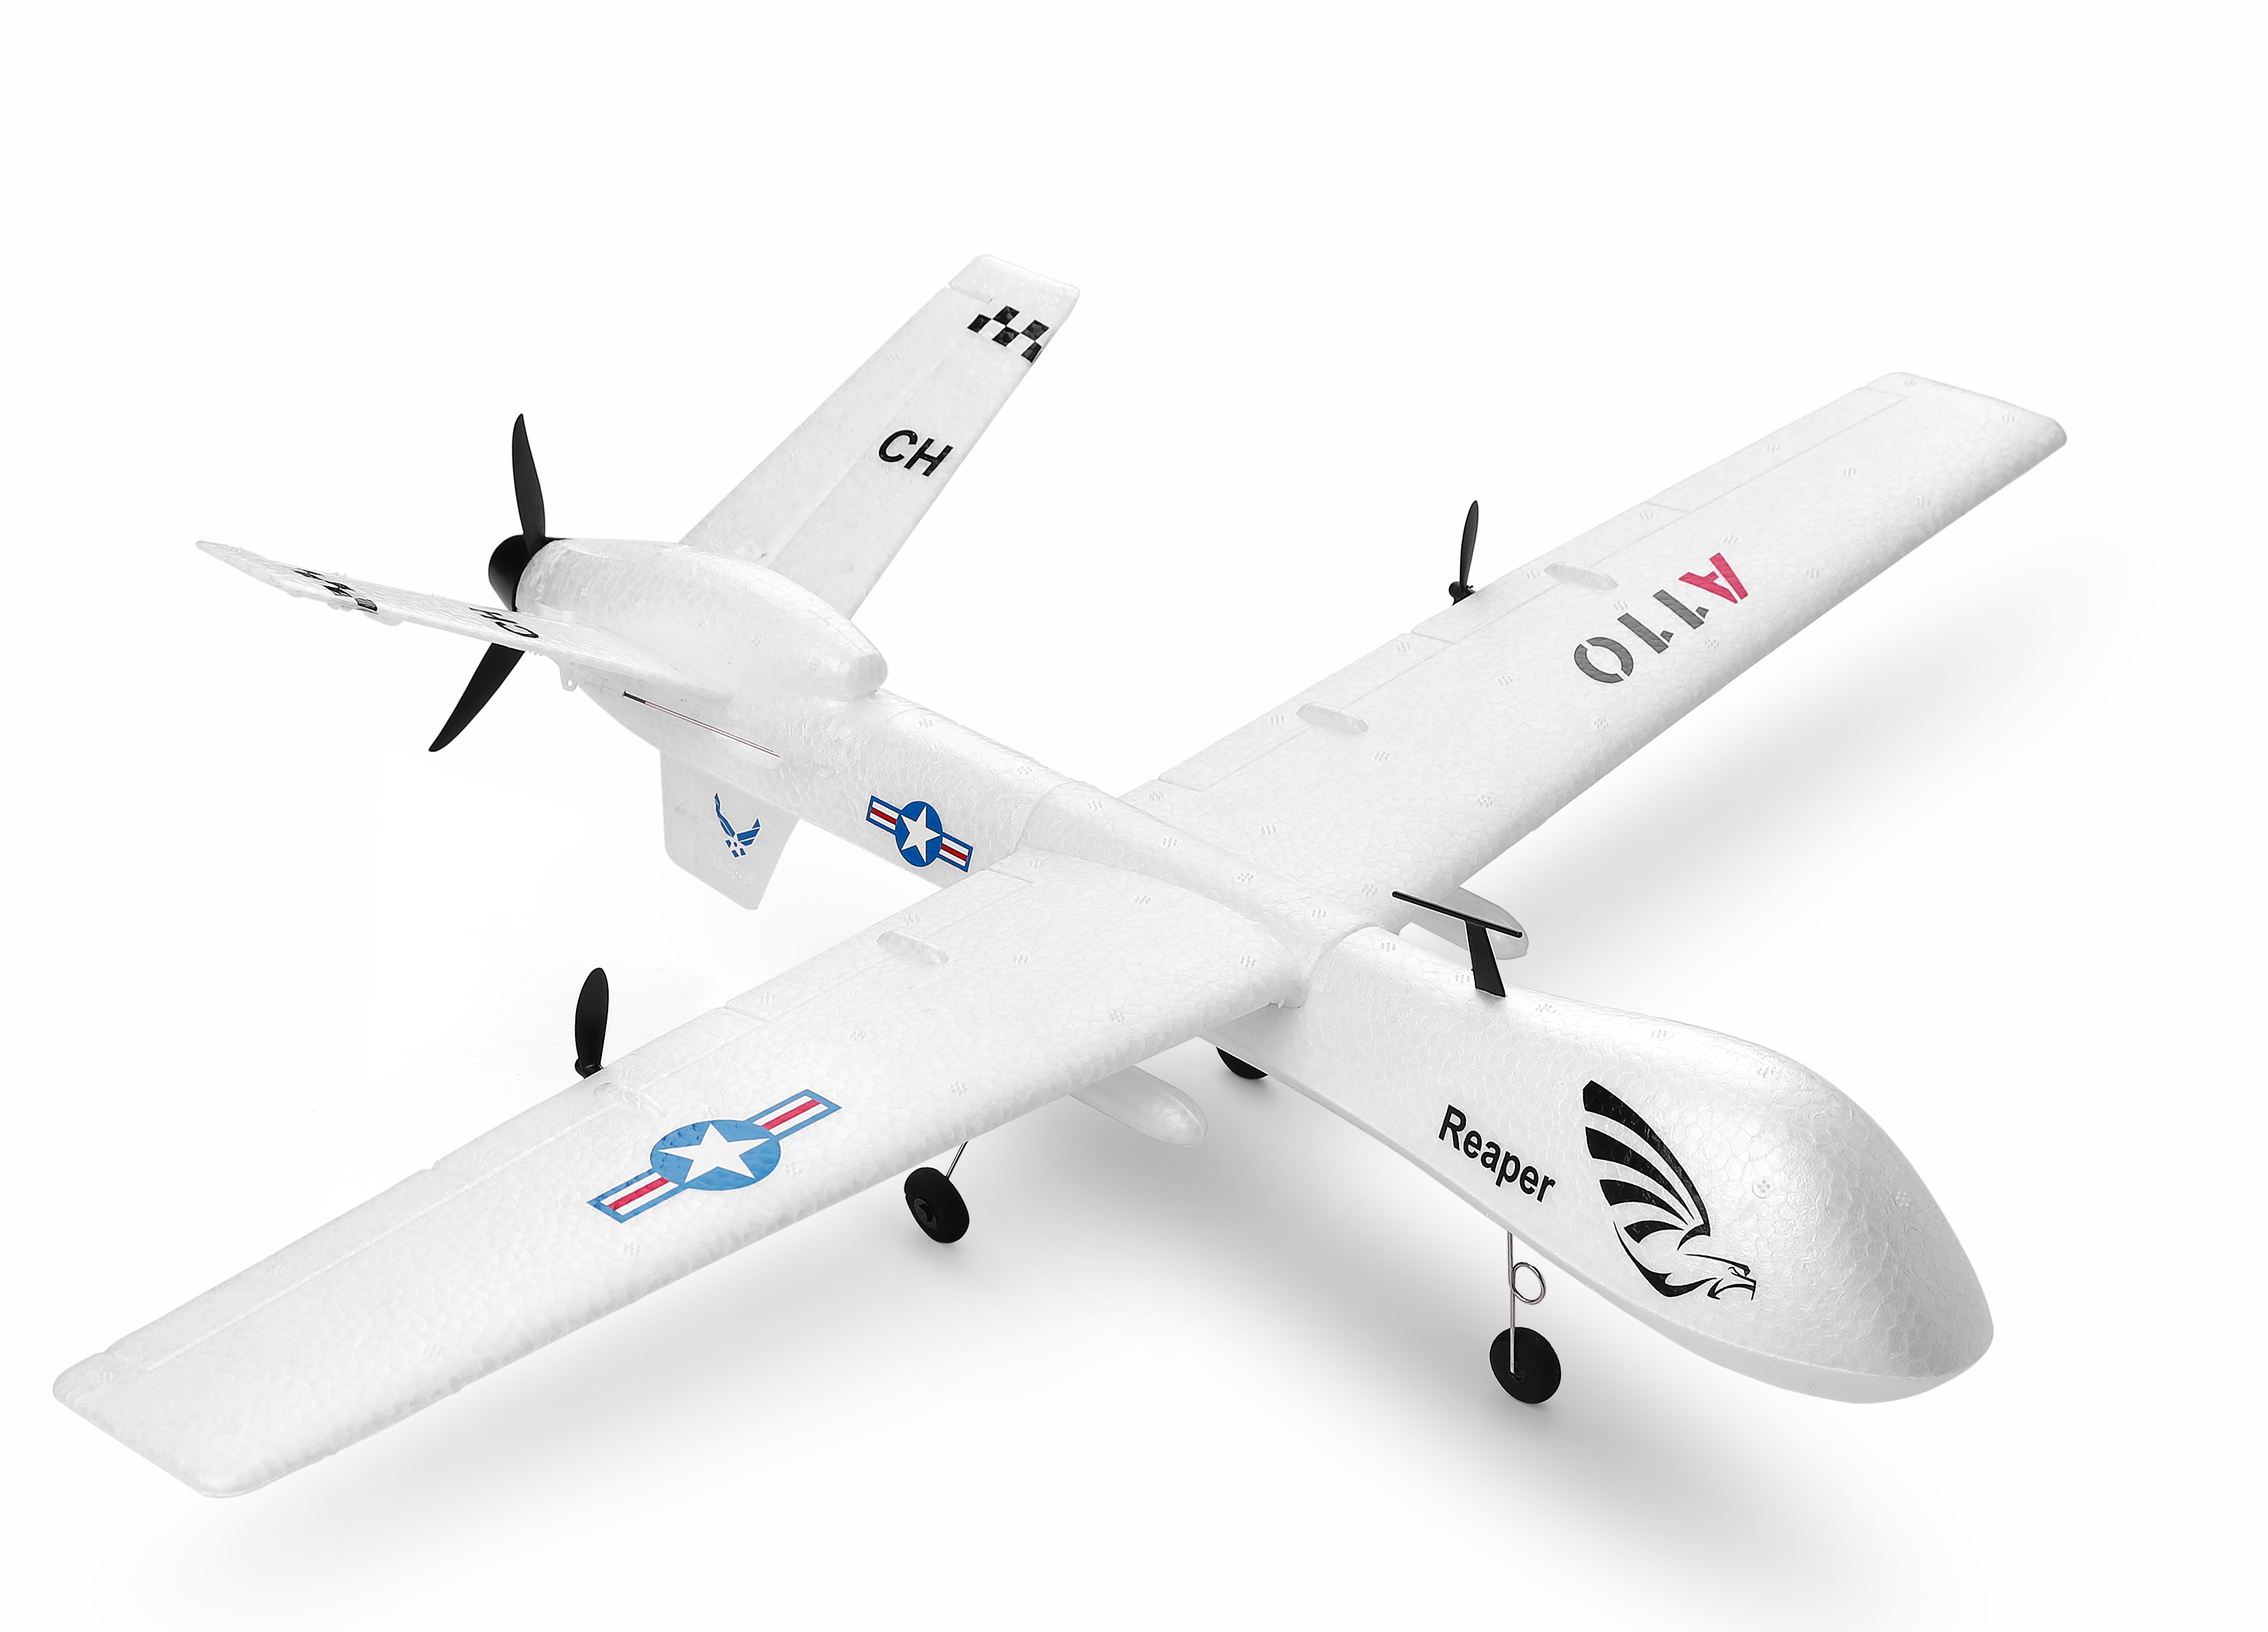 Wltoys XK A110 Predator RC Plane and Parts